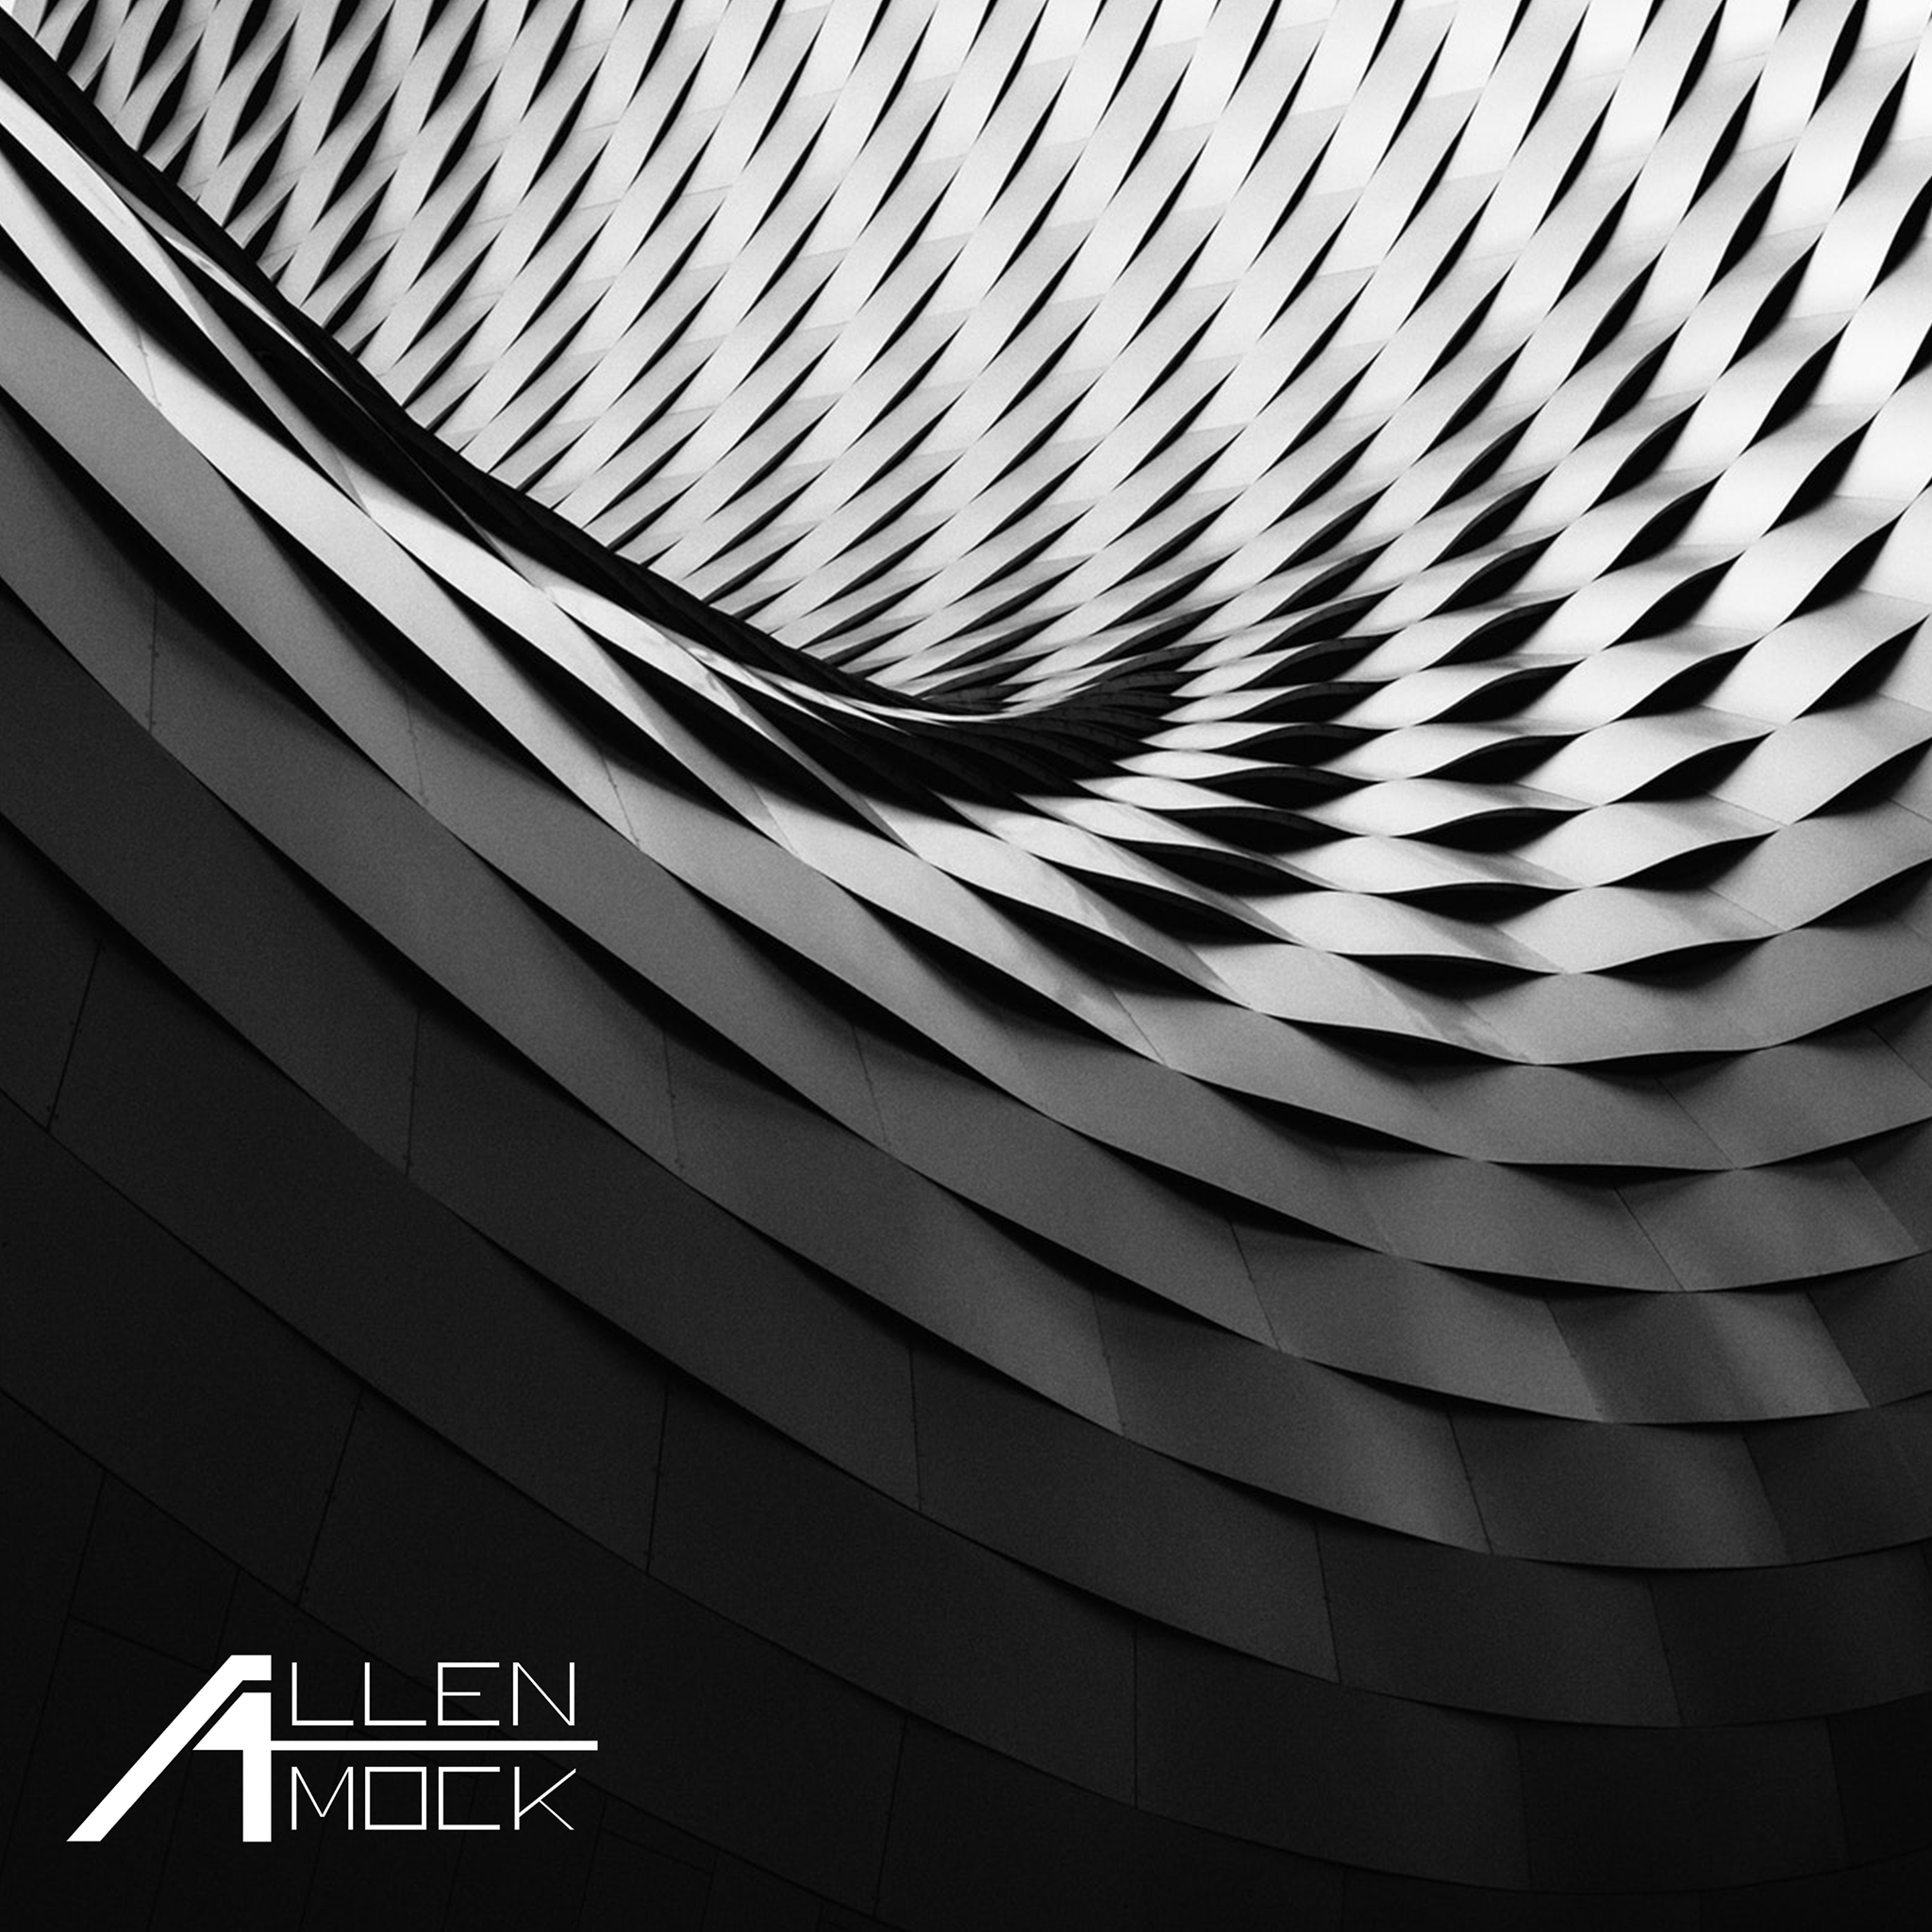 Premiere Allen Mock Reveals Sonic Depth In His Flip Of High Breed